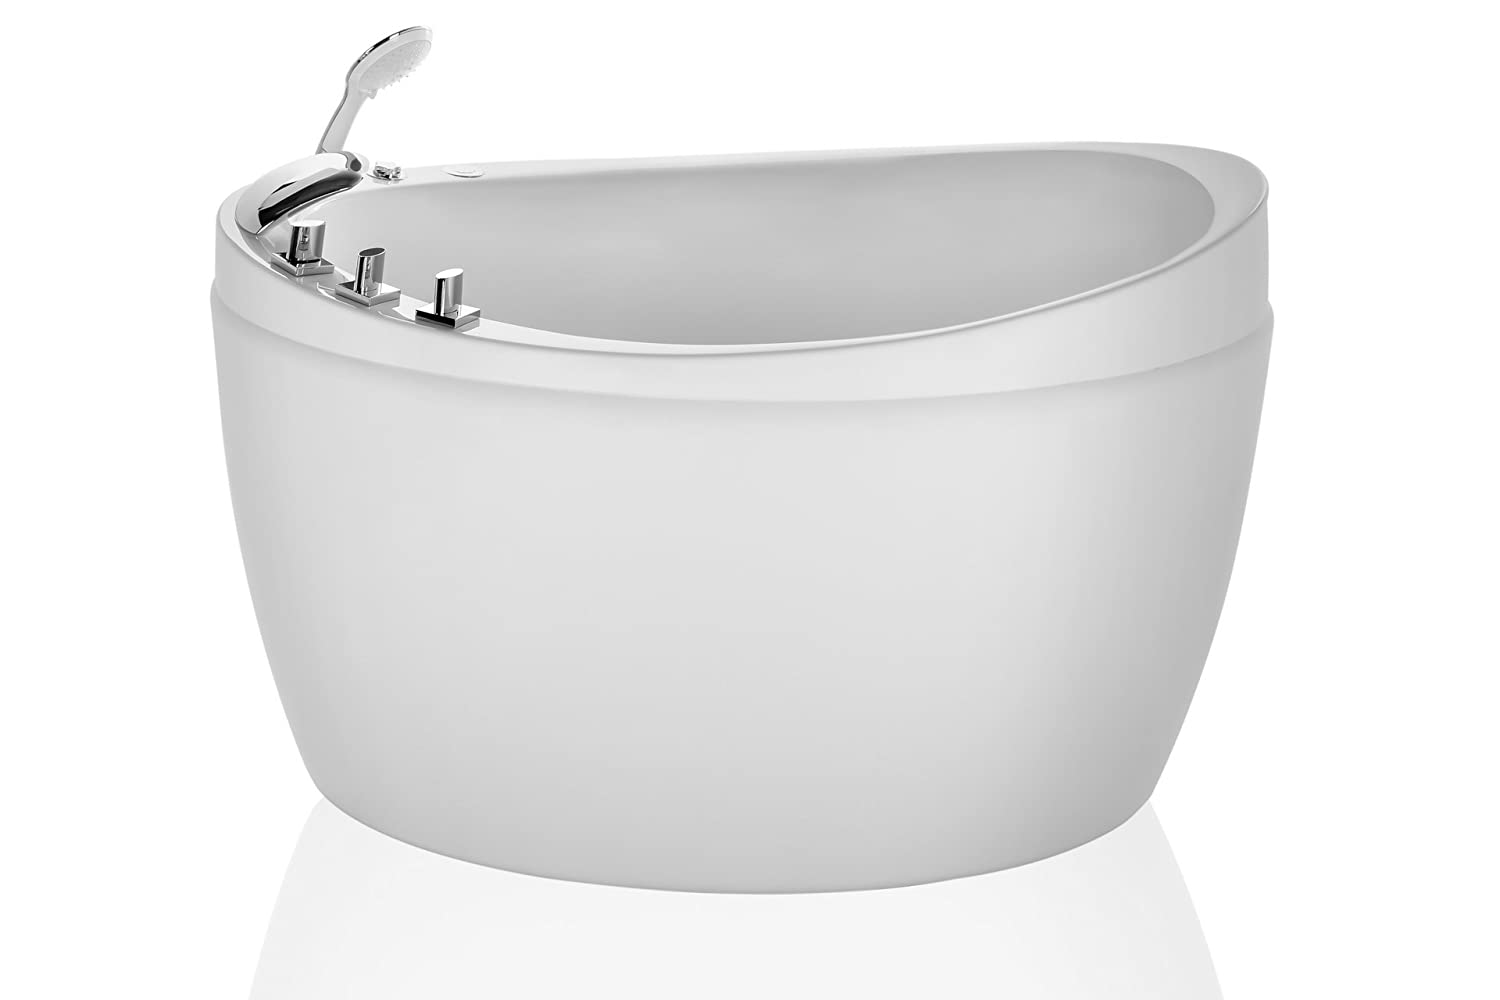 5. Empava 48-inch Freestanding Bathtub Air Micro Bubble Hydrotherapy Oval Japanese Spa Tub